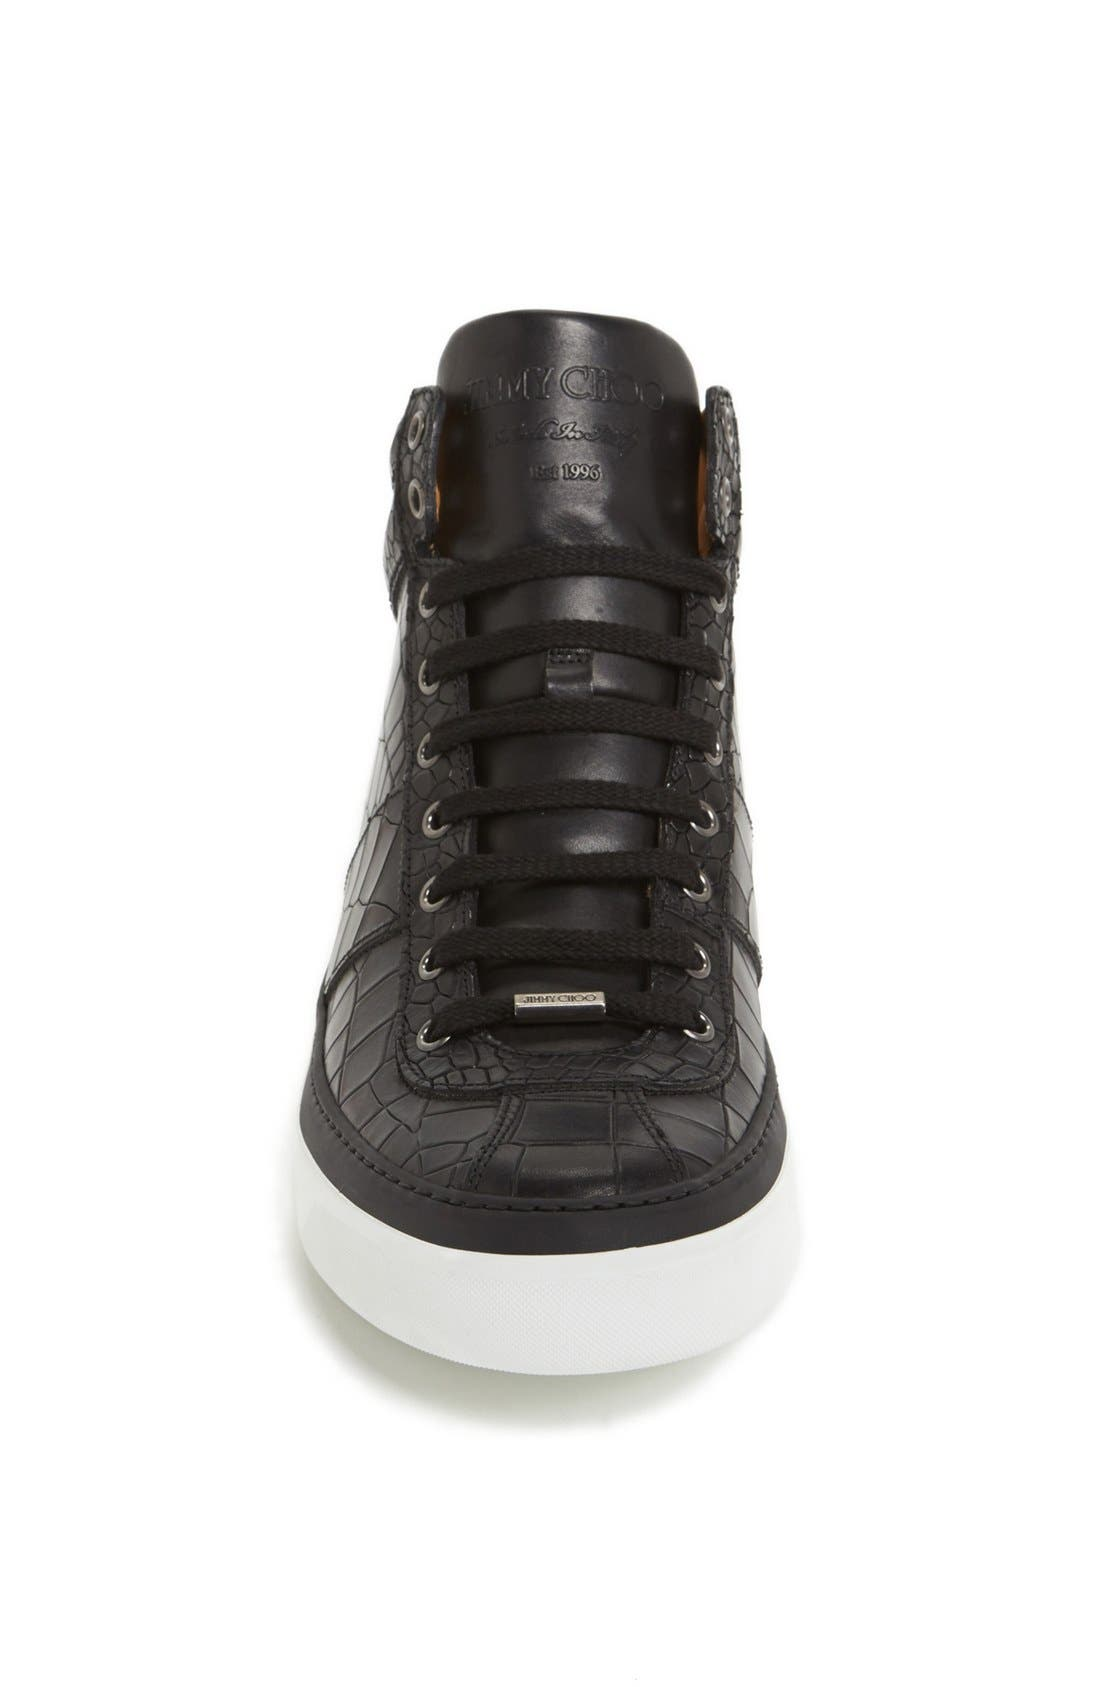 Belgravia High Top Sneaker,                             Alternate thumbnail 3, color,                             Black